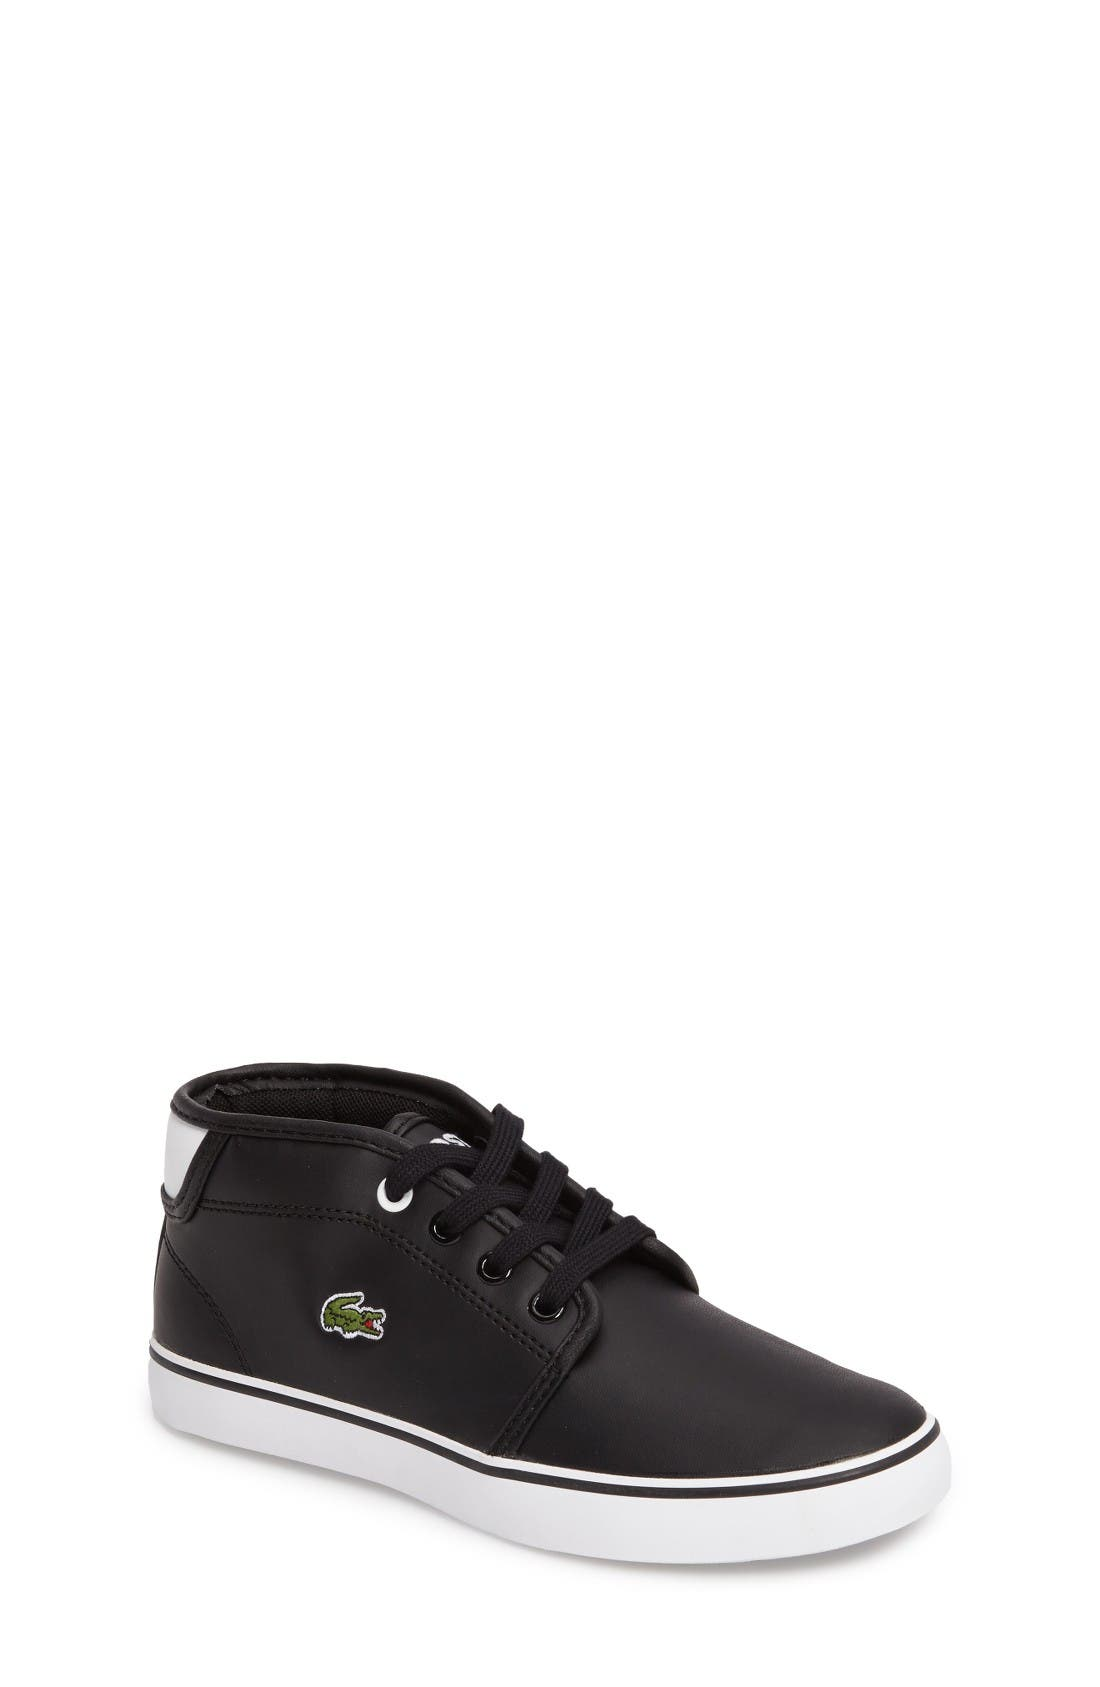 Lacoste Ampthill High Top Sneaker (Baby, Walker, Toddler, Little Kid & Big Kid)